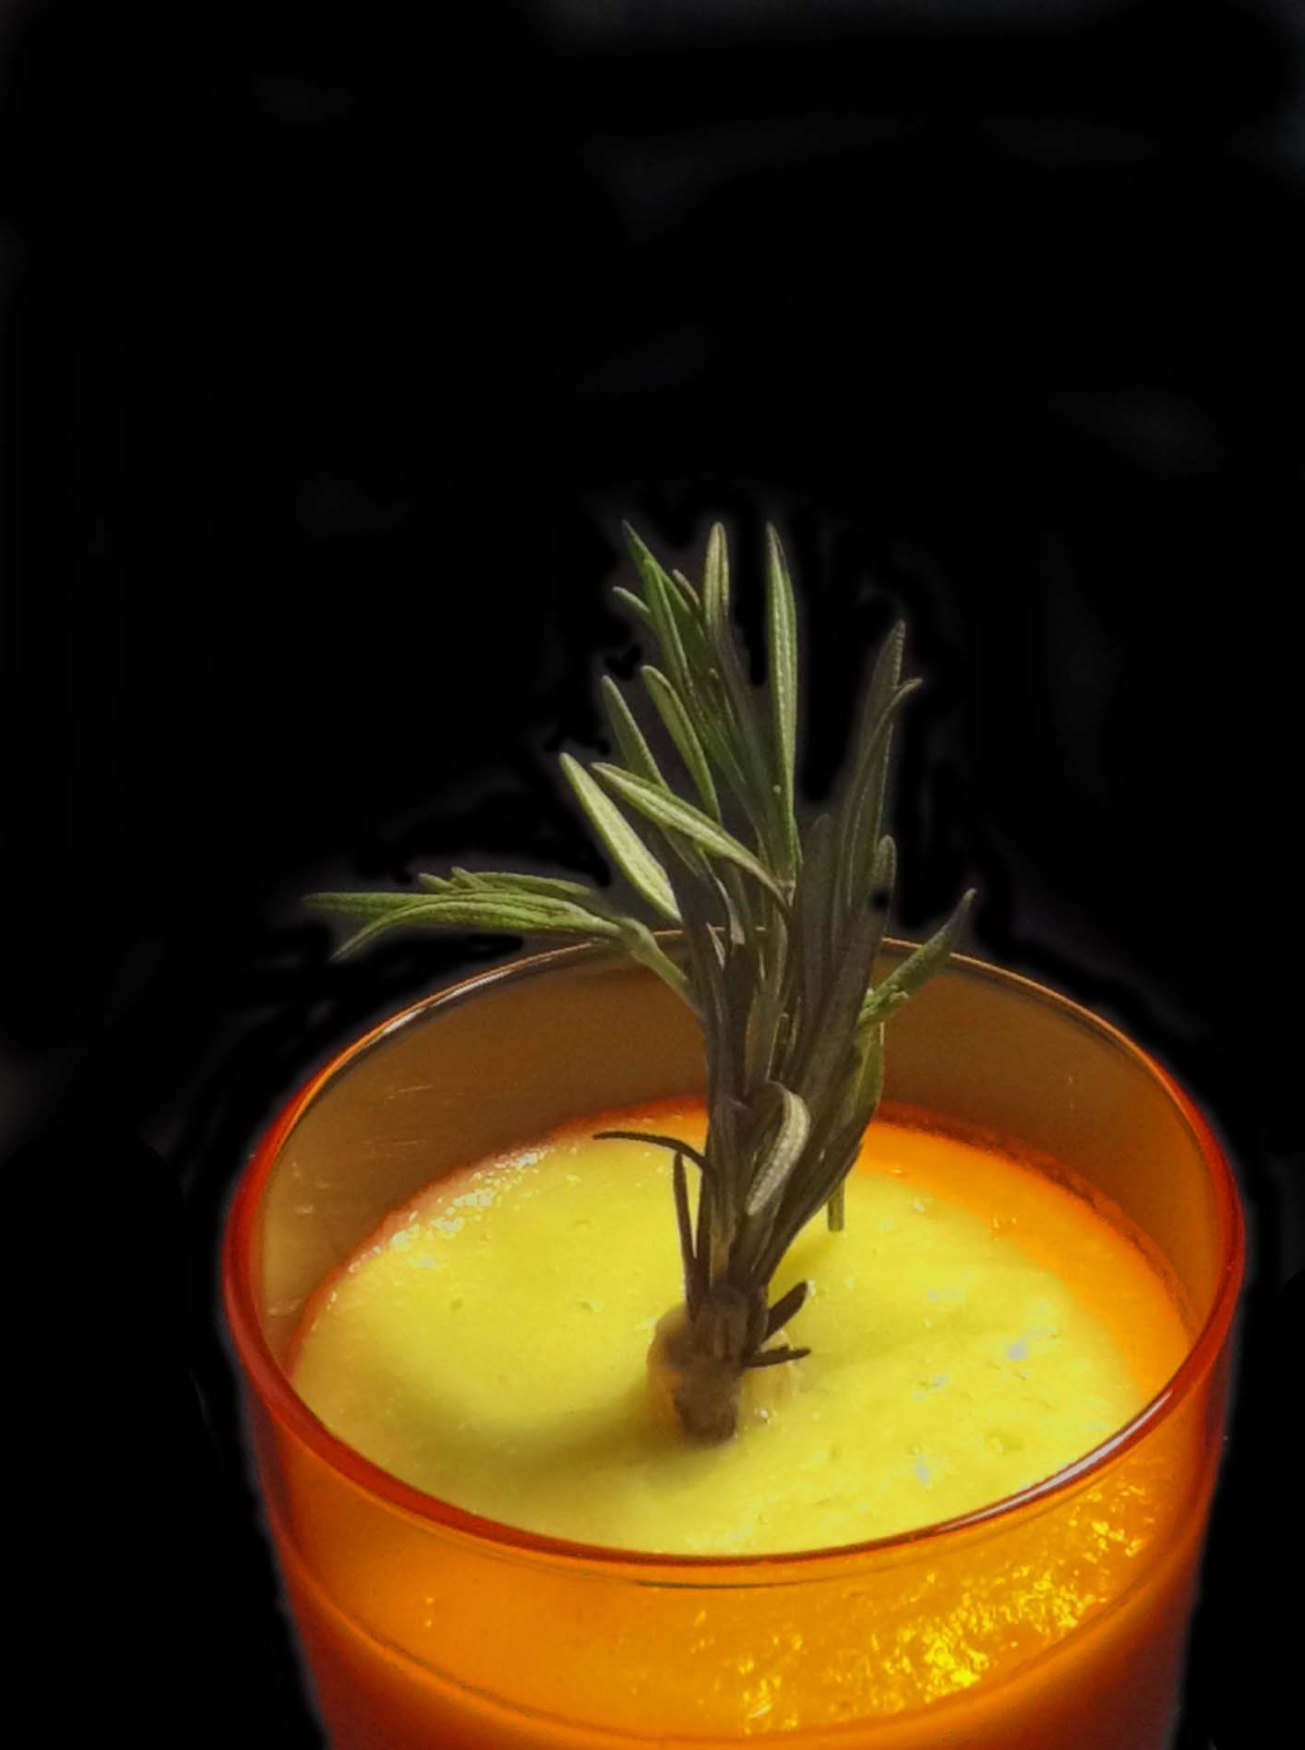 cauliflower-pineapple-orange-and-rosemary-drink-master